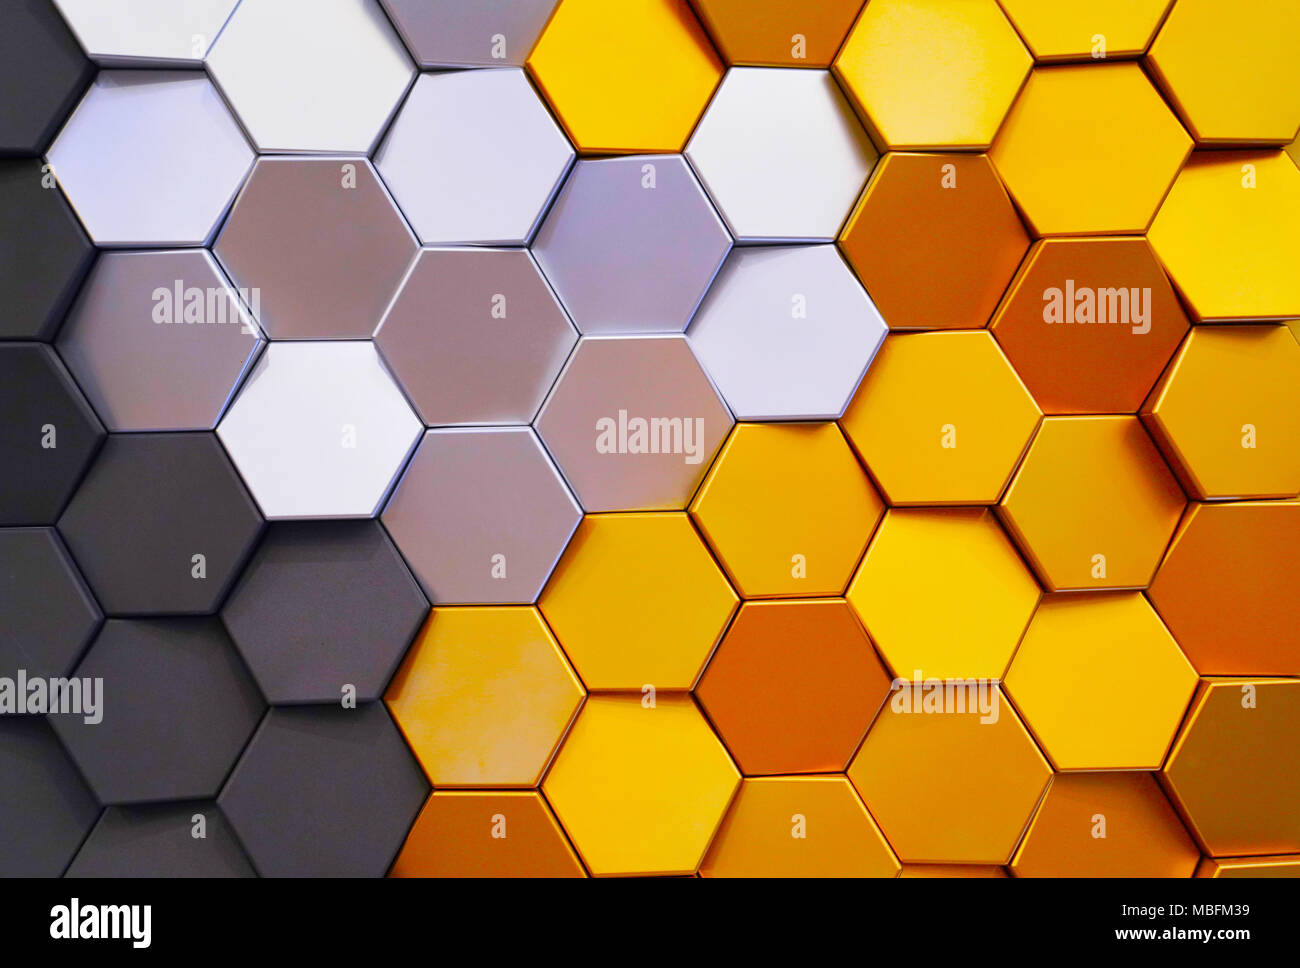 Honeycomb Tiles Stock Photos & Honeycomb Tiles Stock Images - Alamy